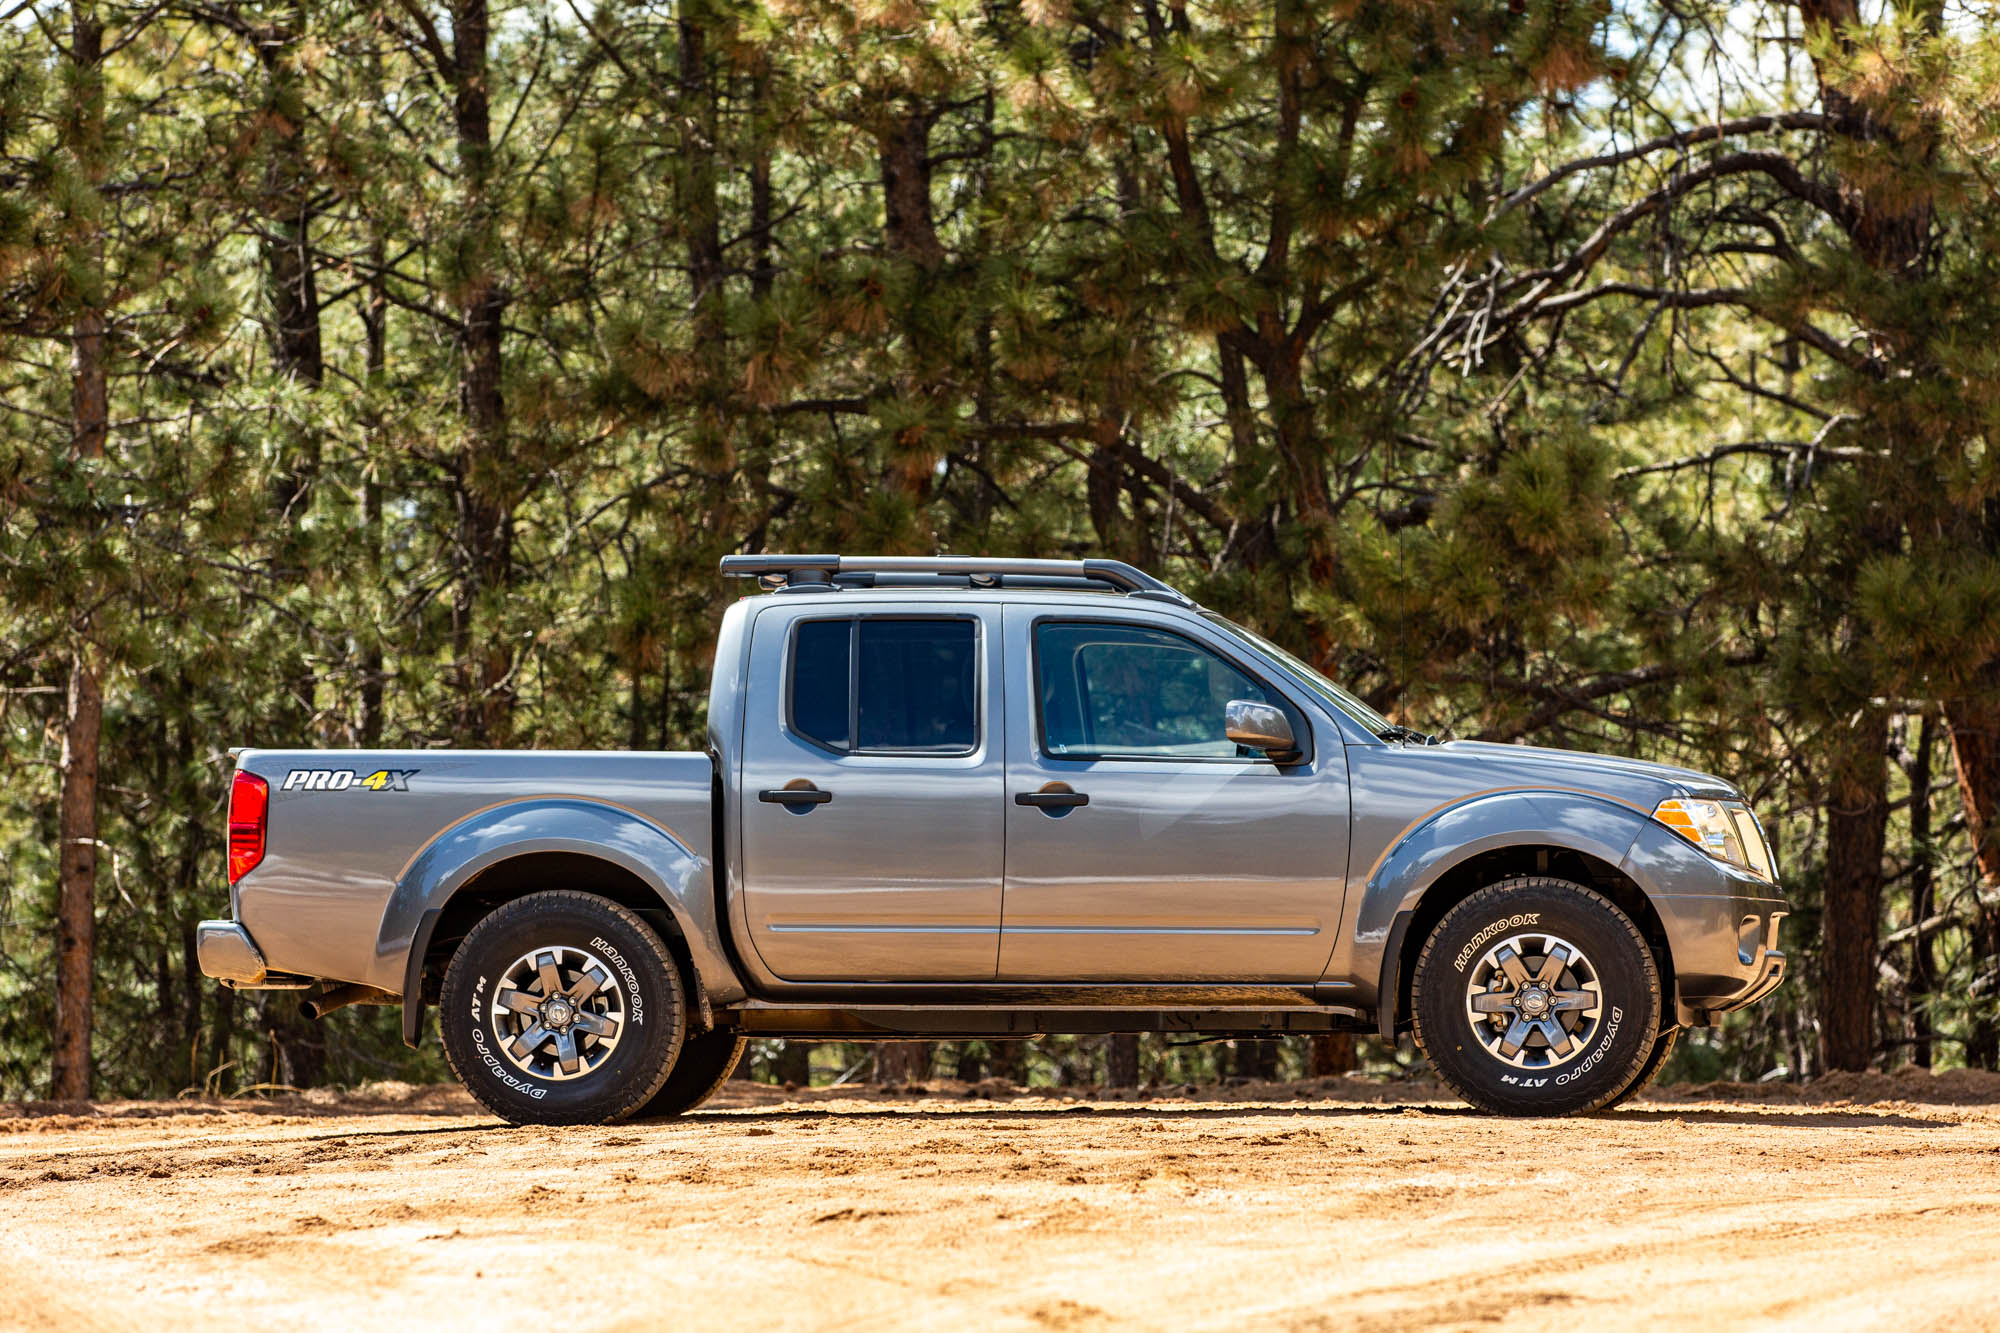 2020 Nissan Frontier Mid Size Pickup Starts At 27 885 For New V 6 But Old Body